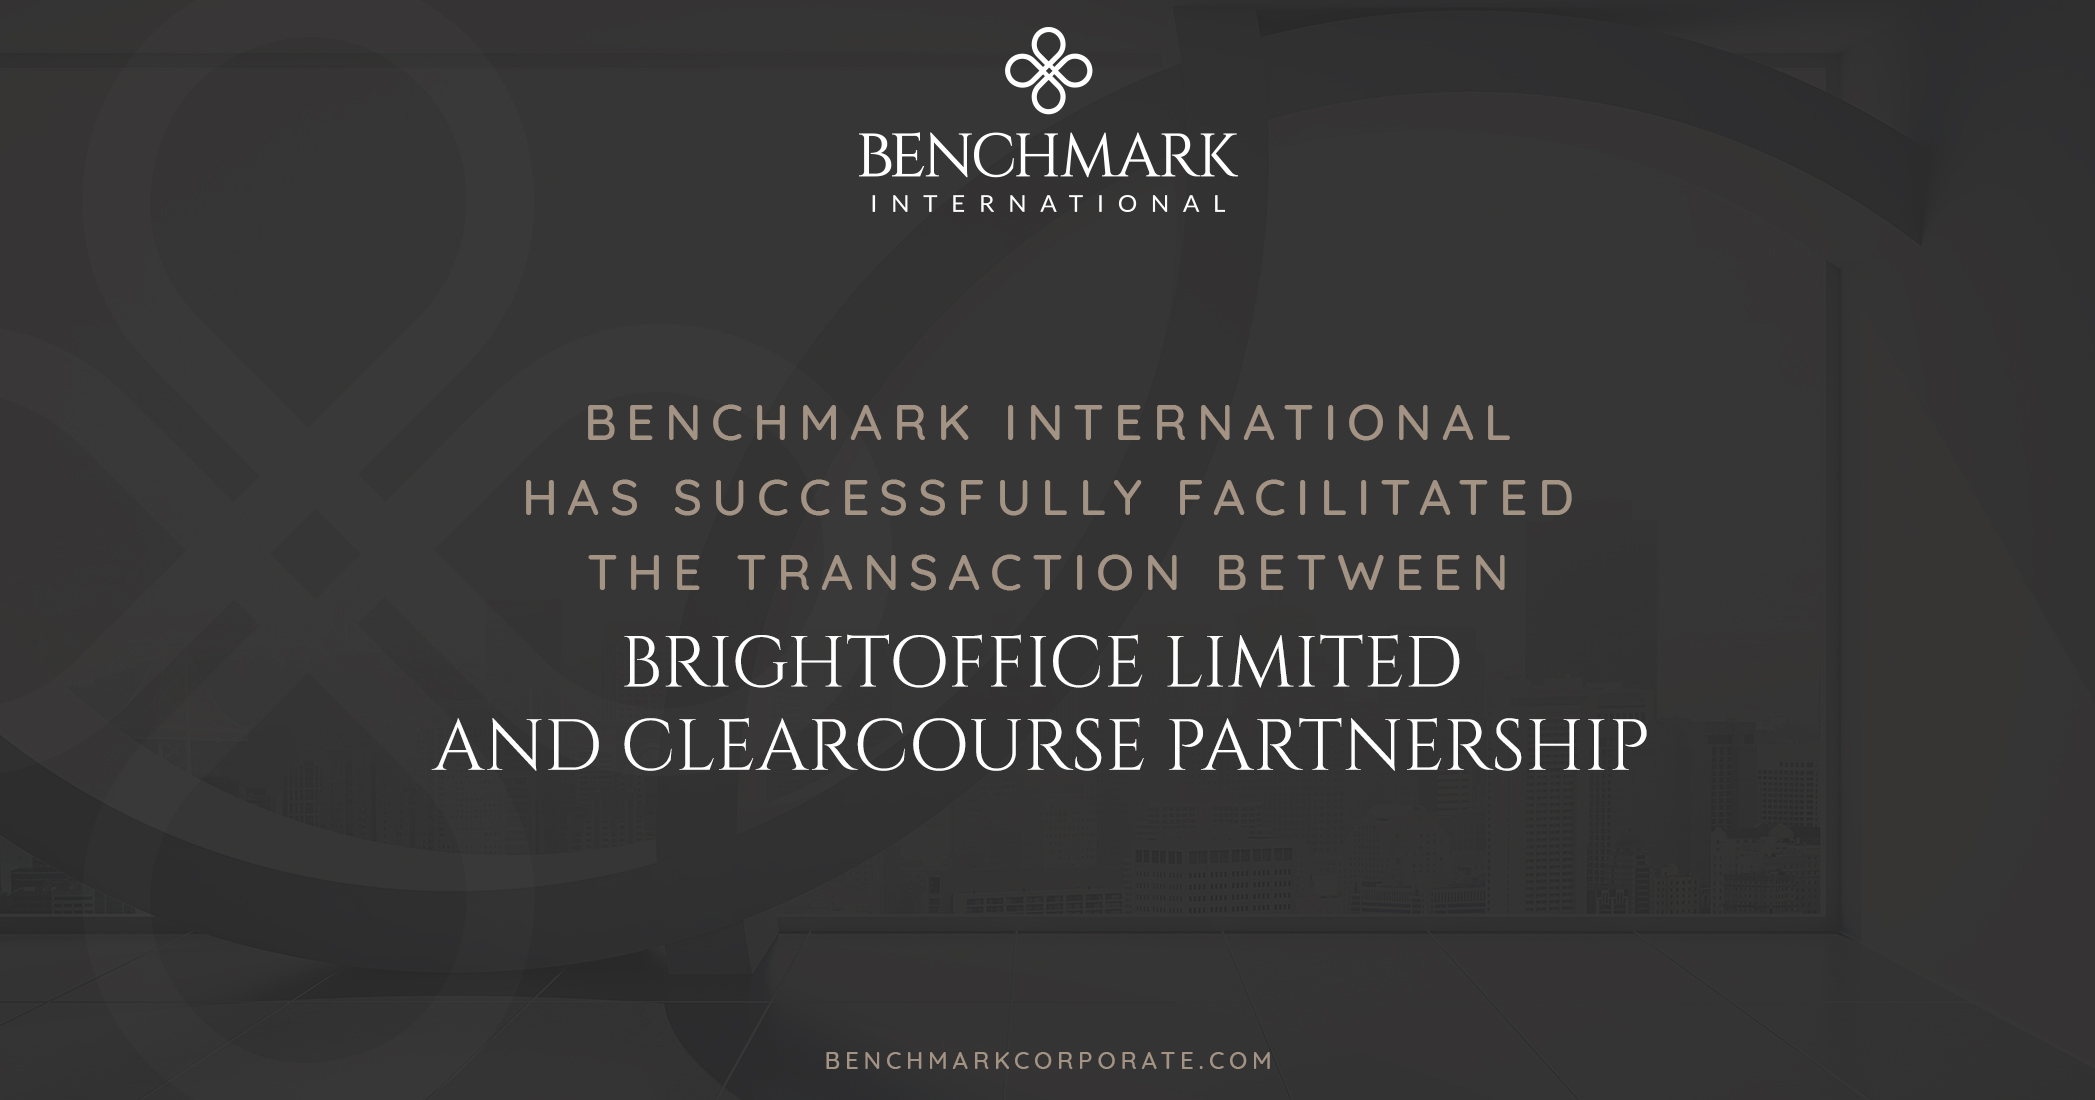 Benchmark International has Successfully Facilitated the Transaction Between BrightOffice Limited and ClearCourse Partnership